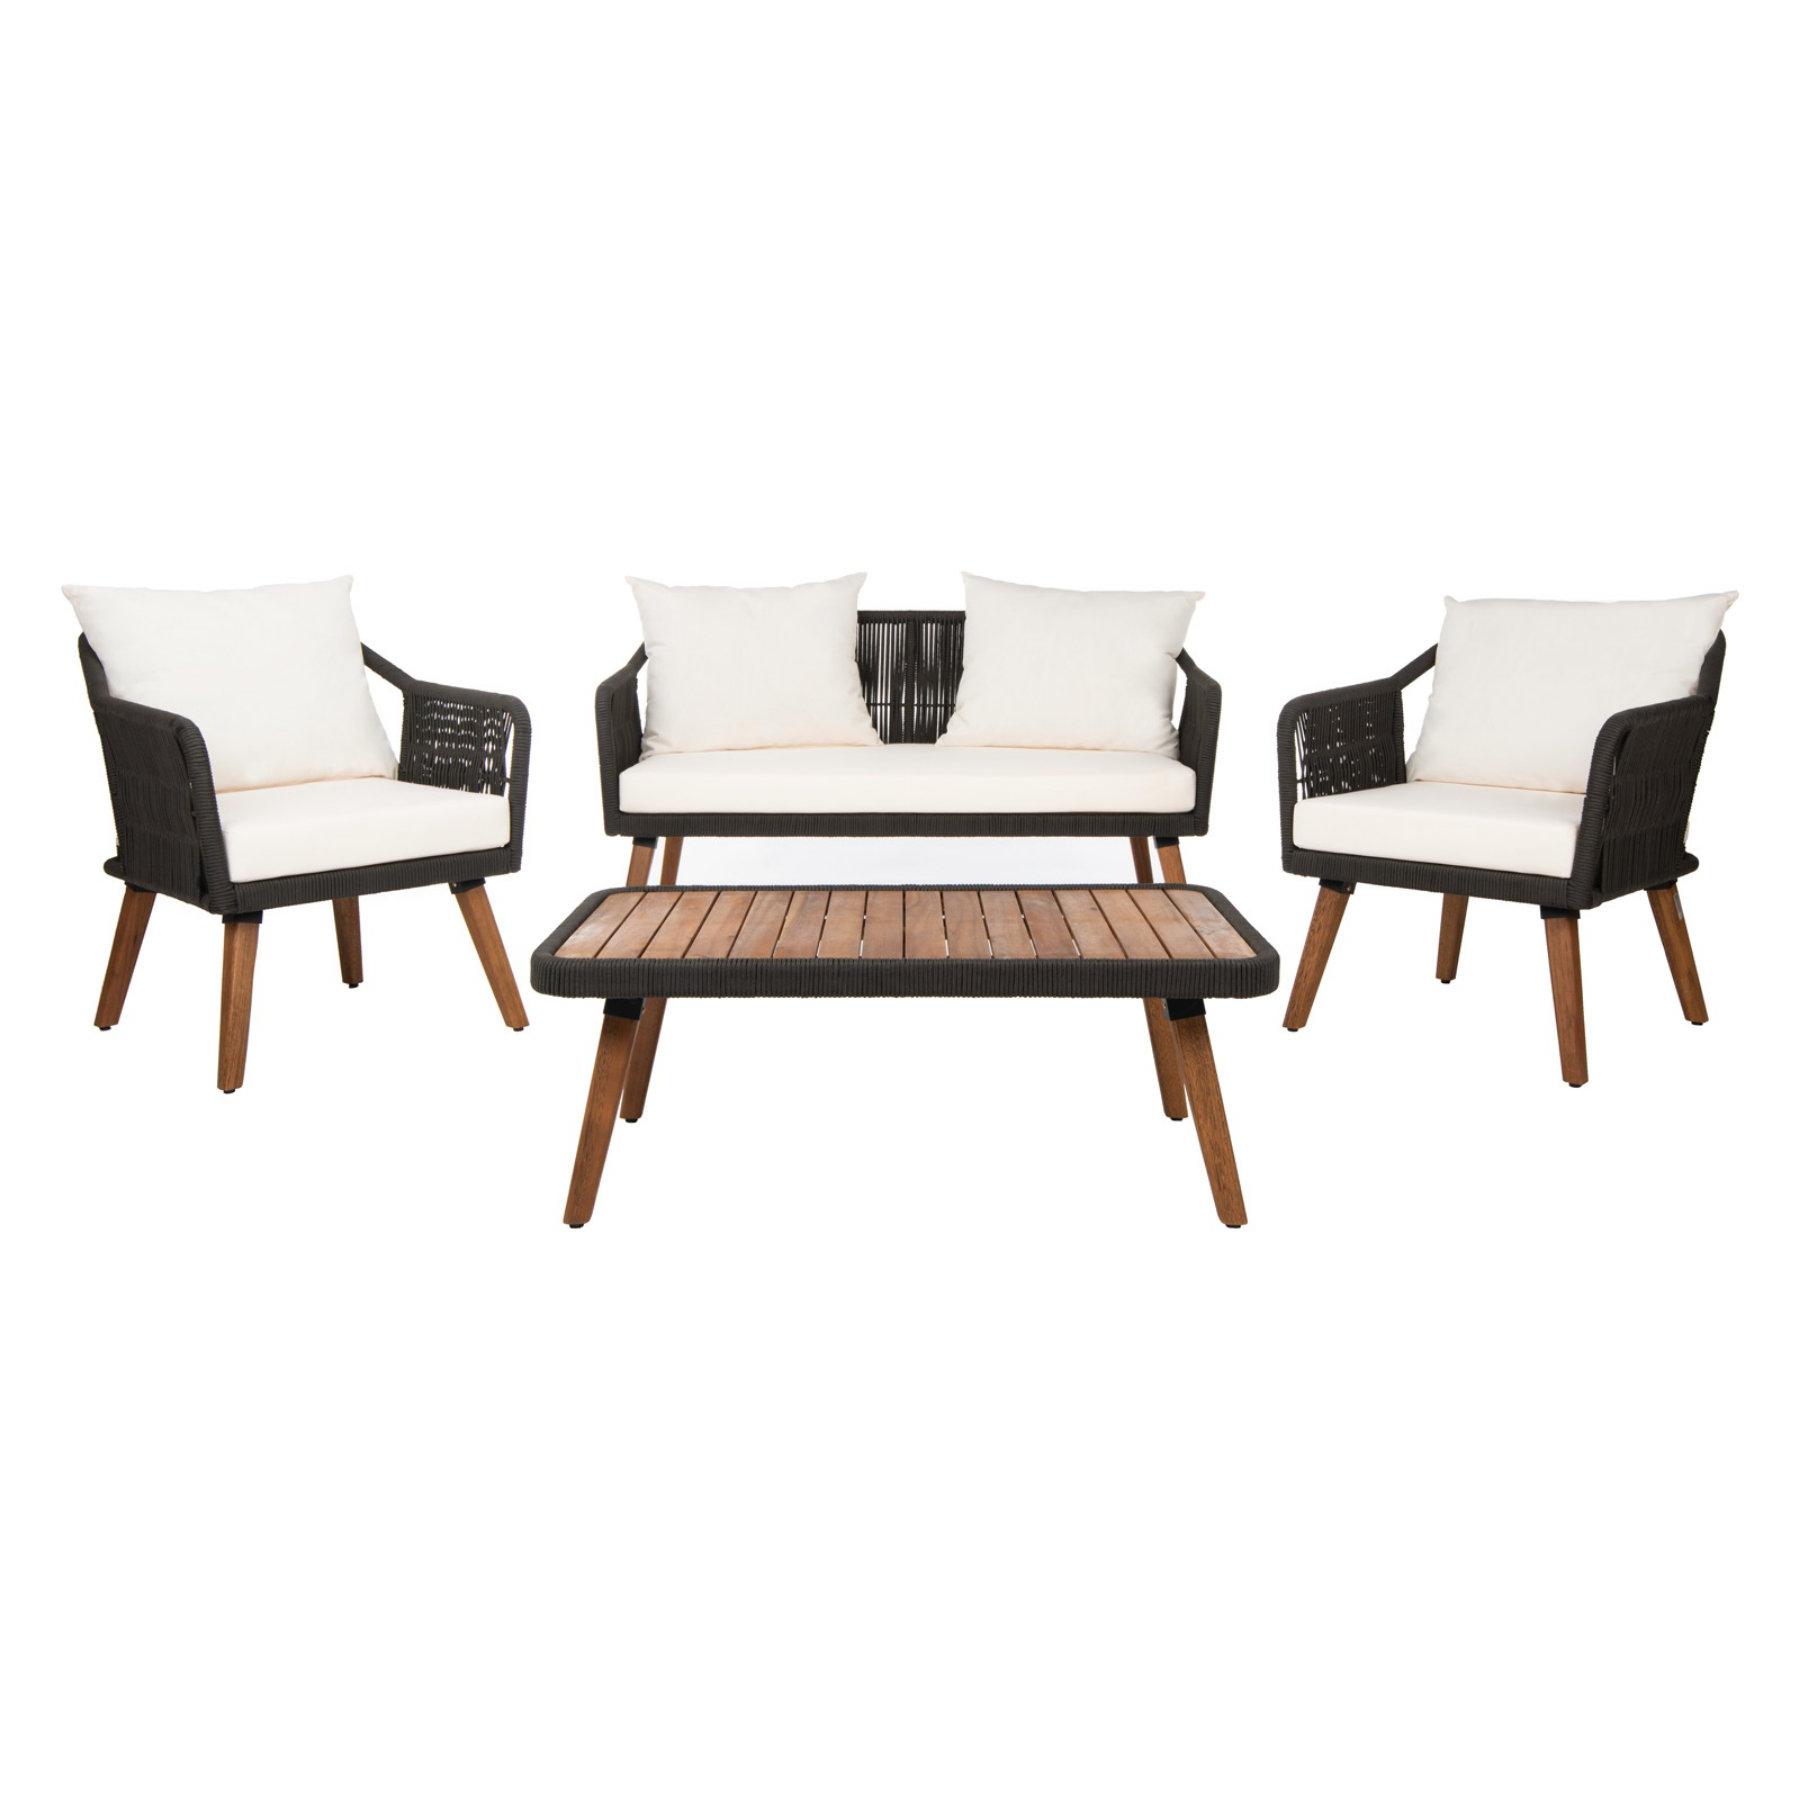 Purington Circular Patio Sectionals With Cushions Inside Newest Outdoor Safavieh Raldin Rope 4 Piece Patio Conversation Set (Gallery 18 of 20)